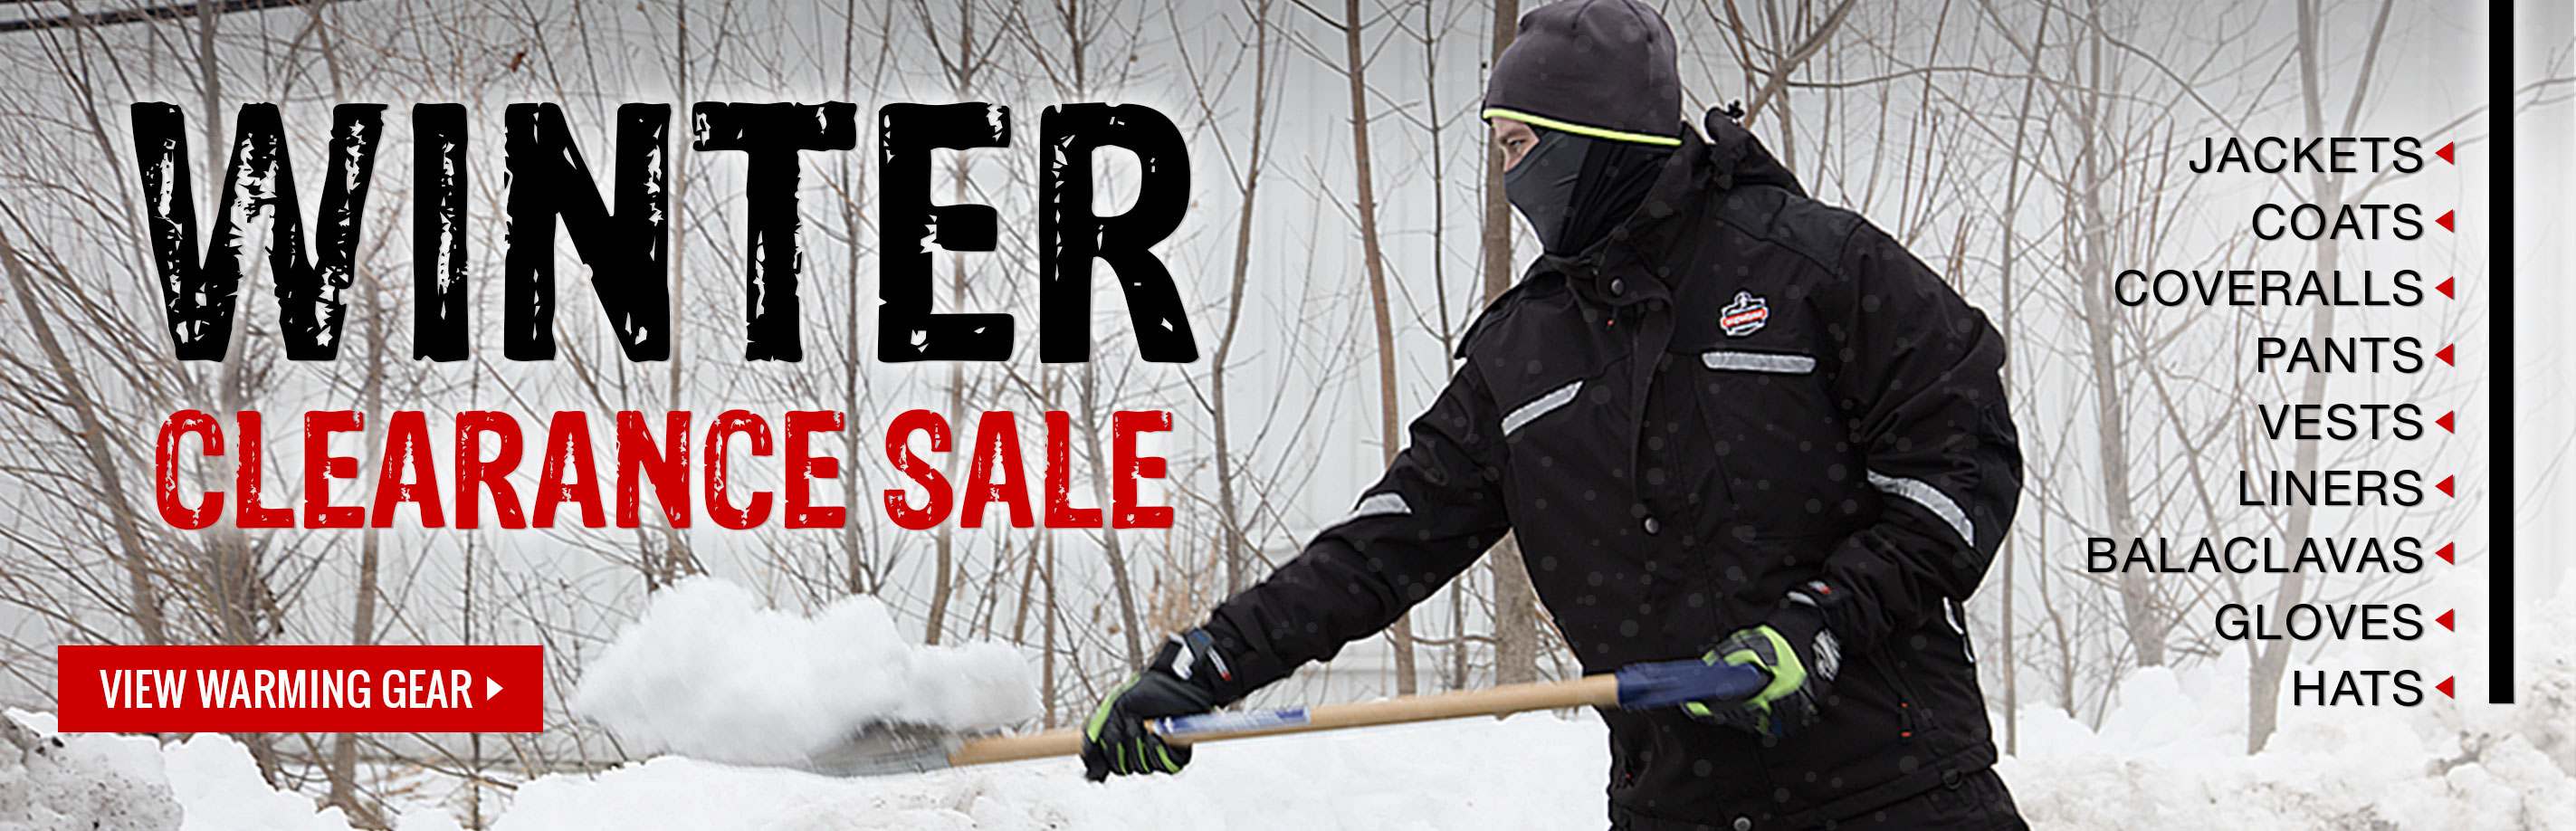 Winter gear clearance sale at GME Supply